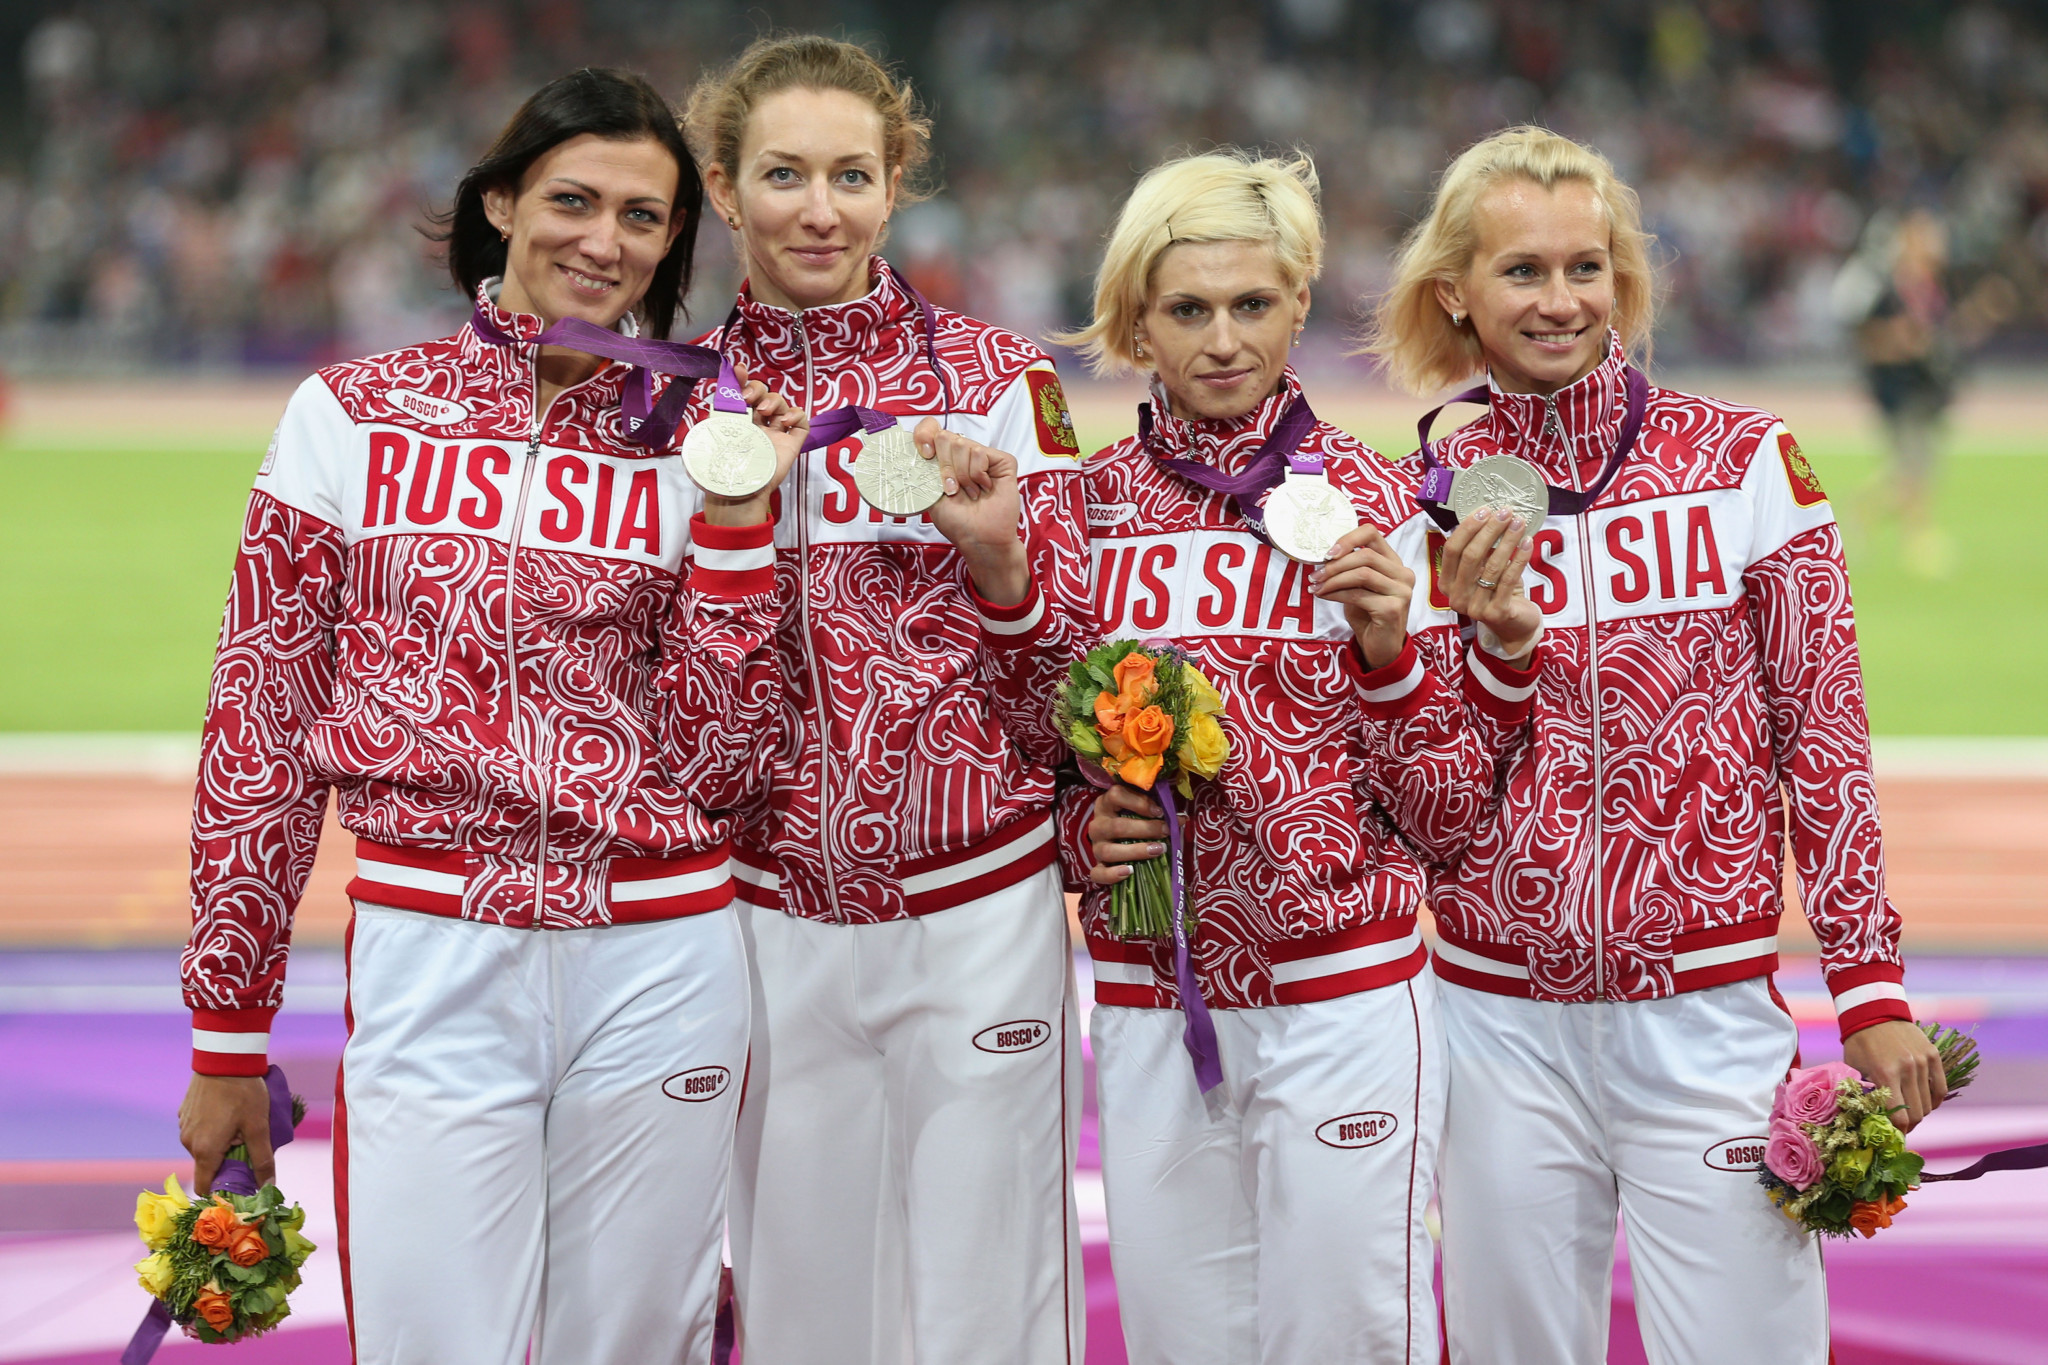 The disqualification by CAS of Tatyana Firova, second right, means three of the four Russian runners who won the Olympic silver medal in the 4x400m at London 2012 have now been disqualified for doping ©Getty Images